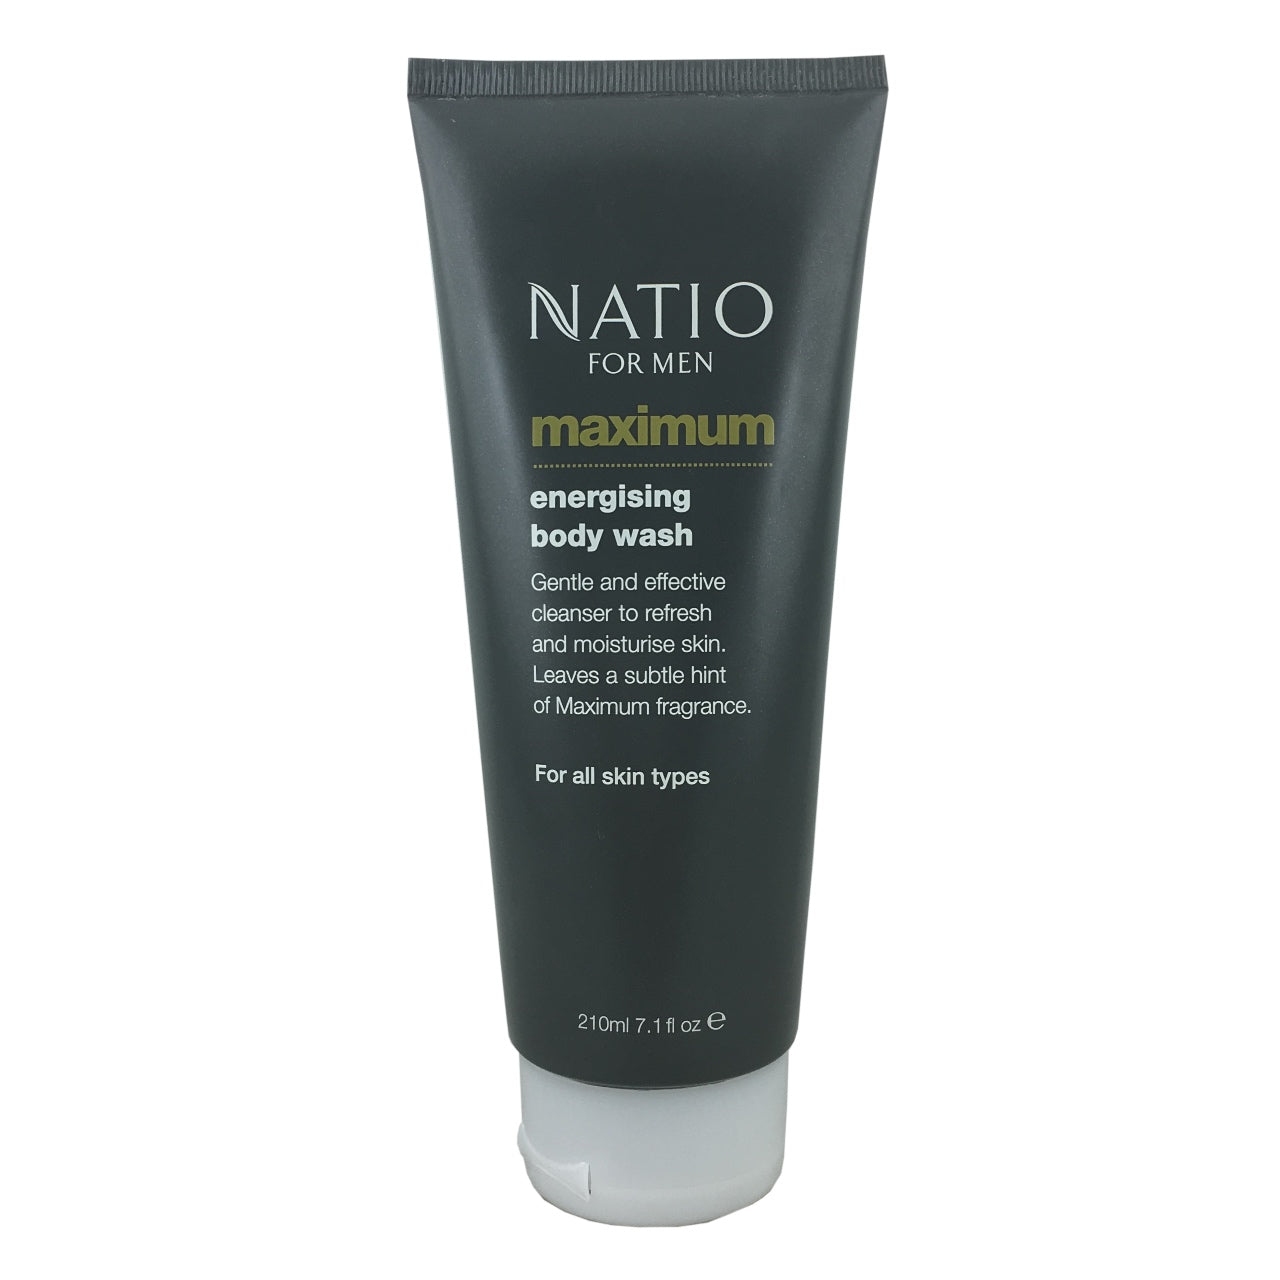 Natio For Men Maximum Energising Body Wash